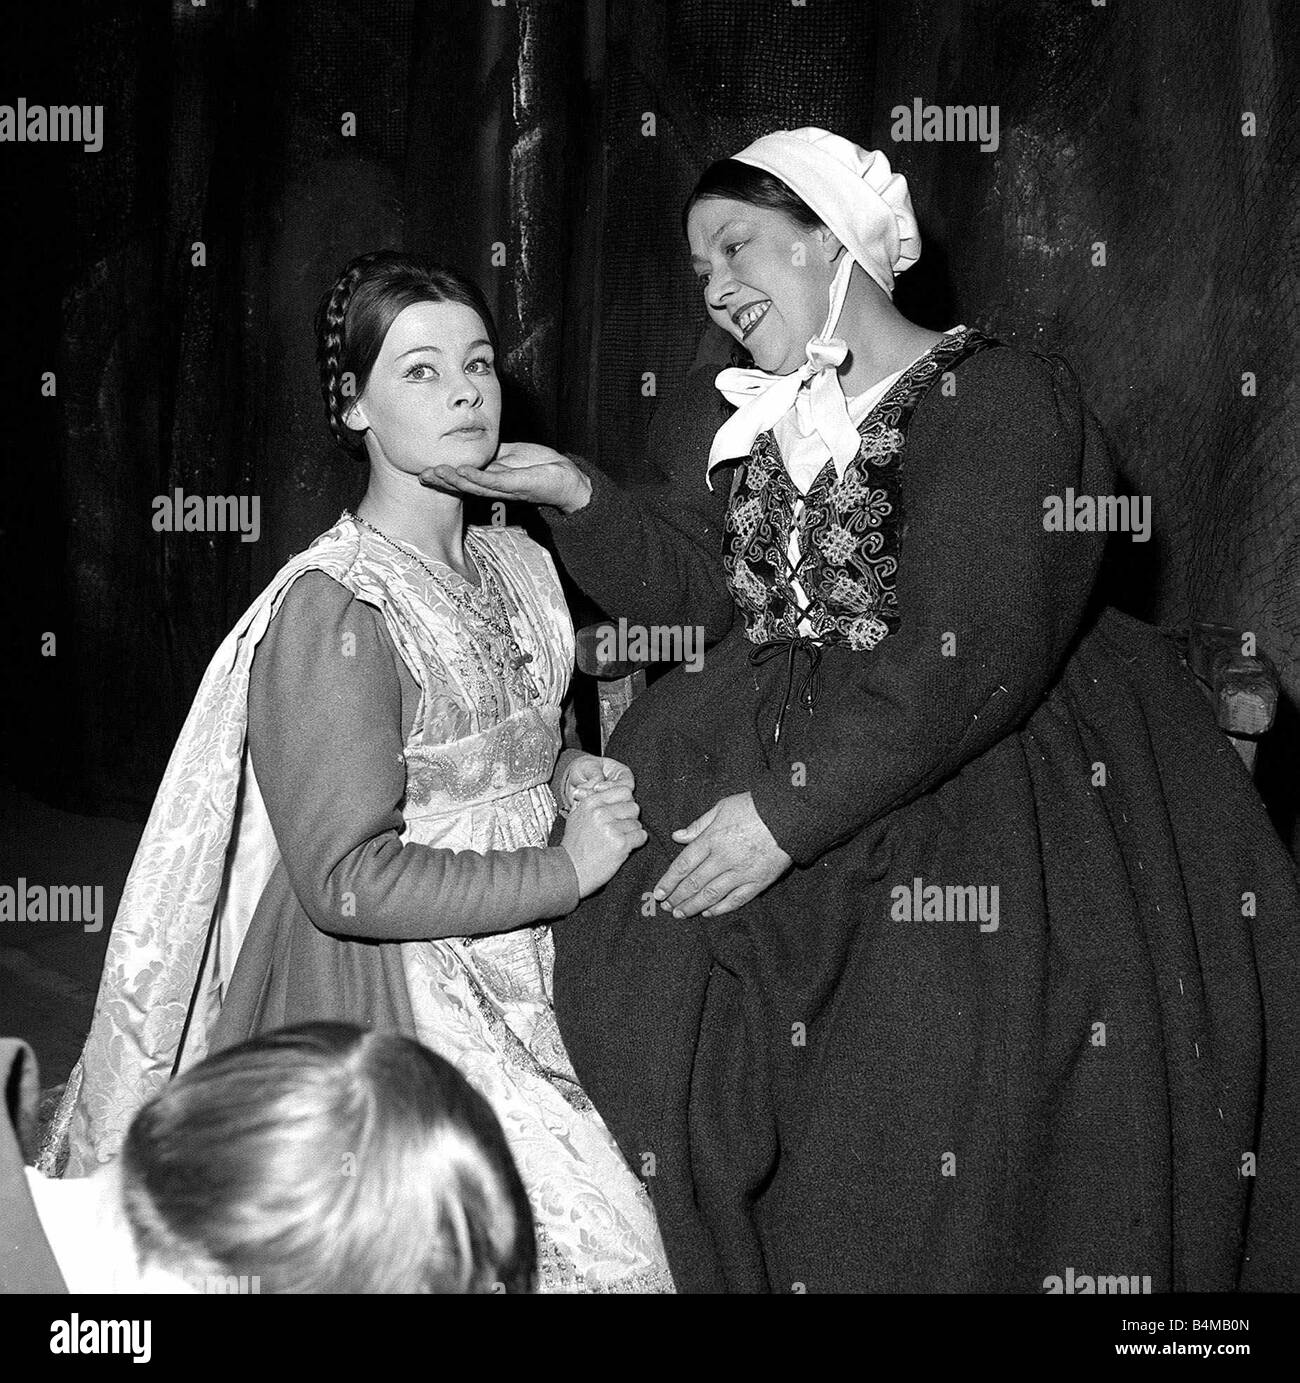 judi dench as juliet and peggy mount as the nurse in the